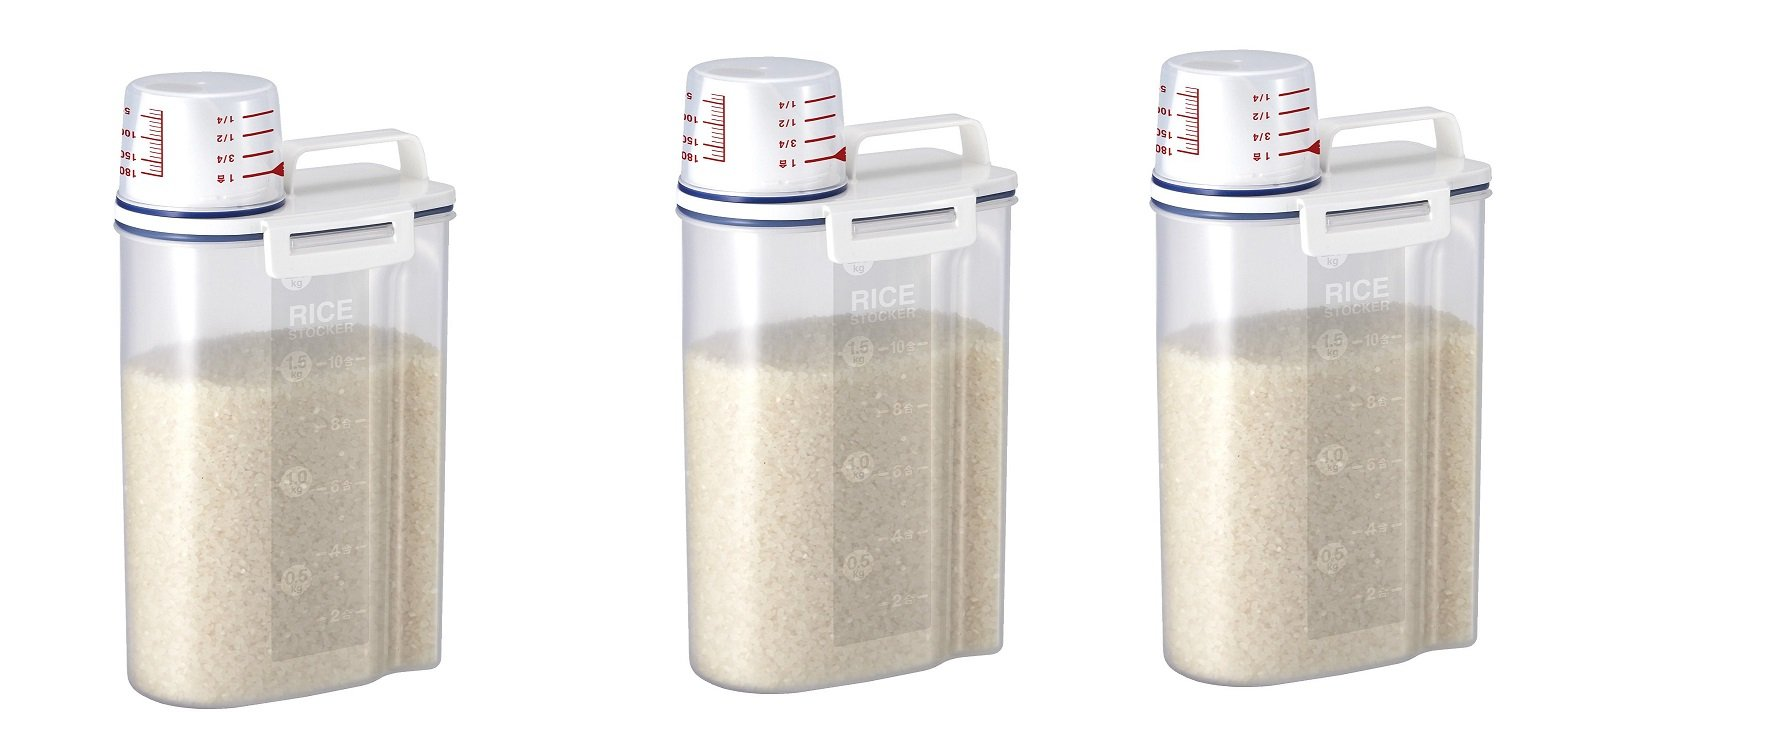 Rice Storage Bin with Pour Spout by Asvel 2kg ('3' PACK)